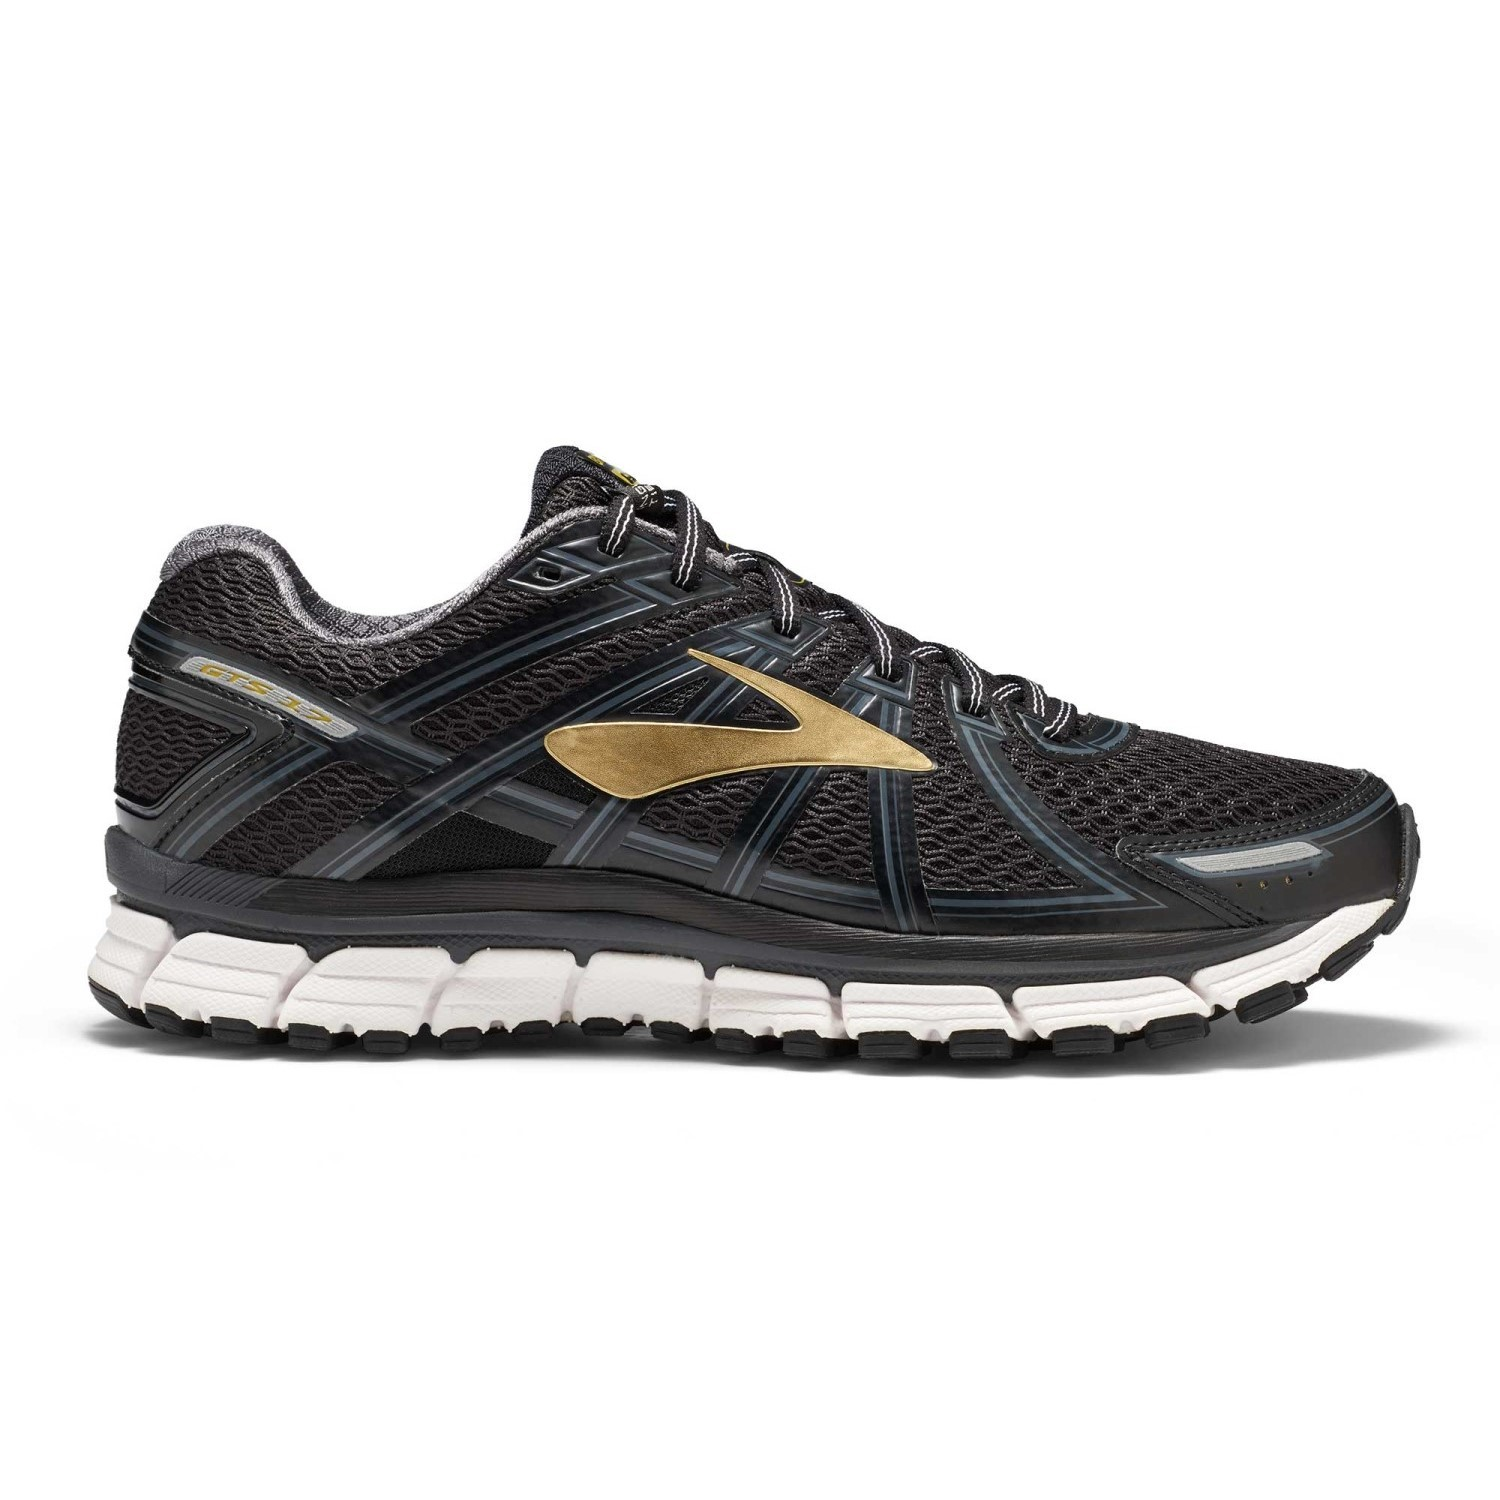 5133e4ad78 Brooks Adrenaline GTS 17 - Mens Running Shoes - Black/Anthracite/Gold